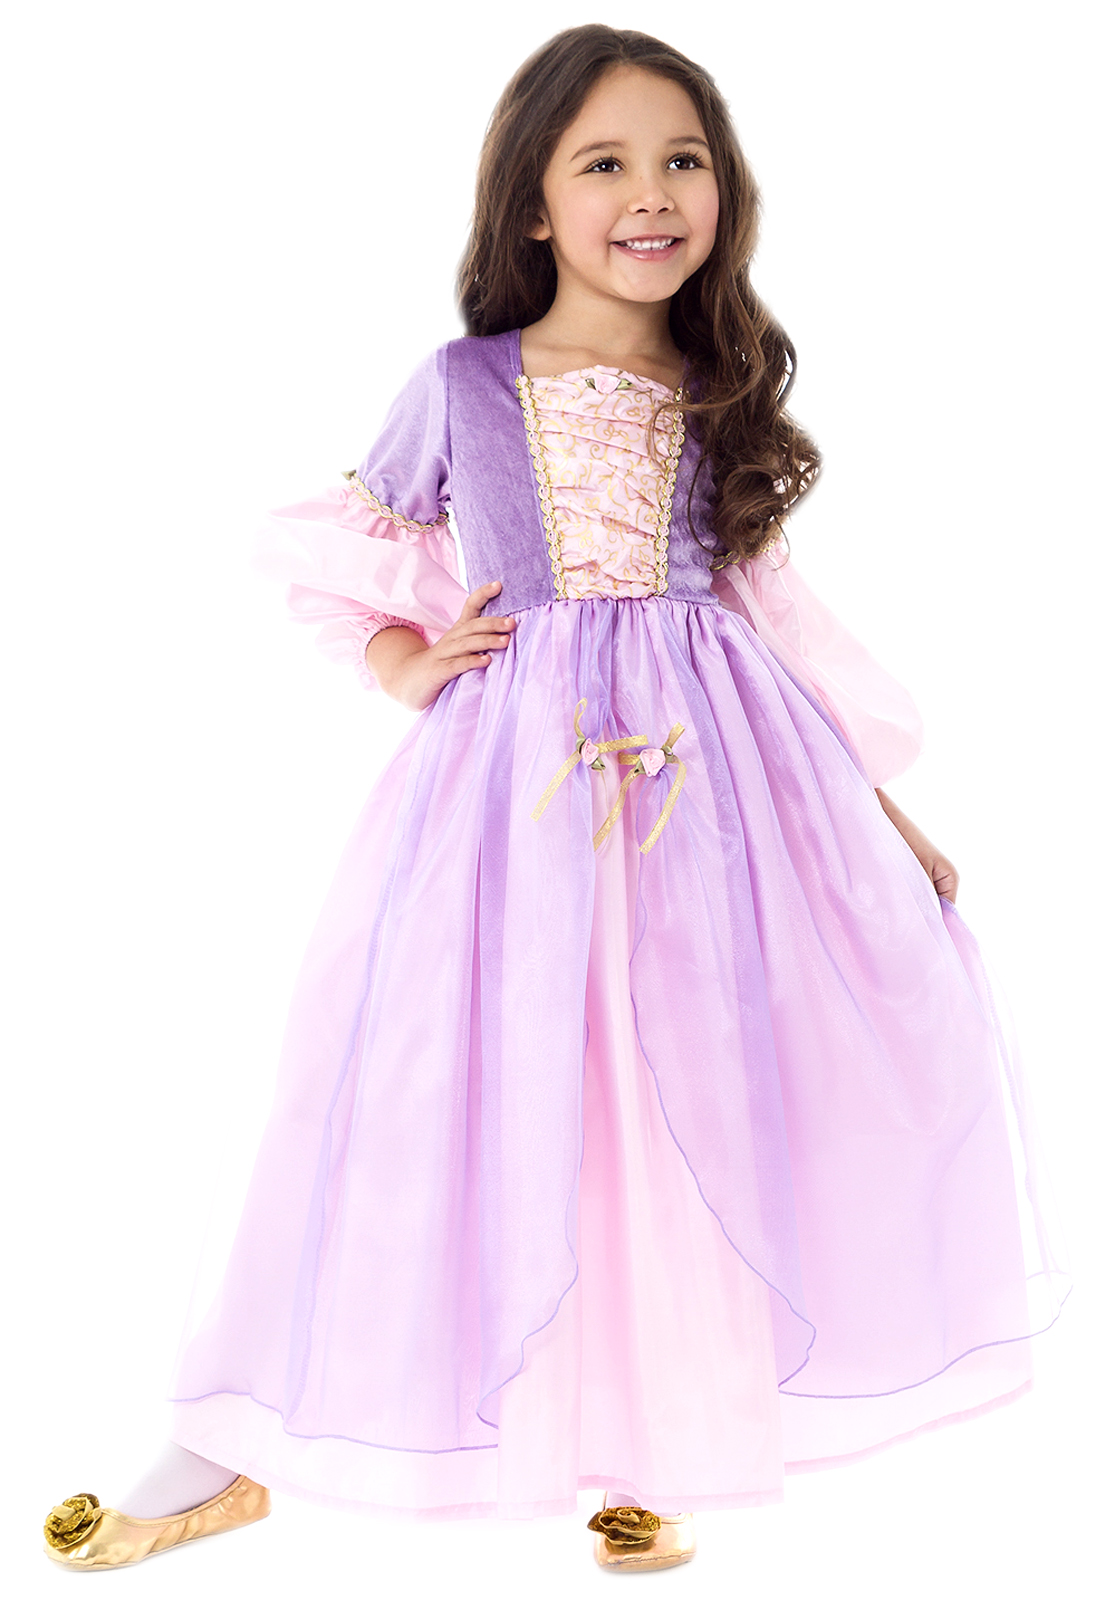 Deluxe Rapunzel - Non-Itchy - Best Dress Ups  sc 1 st  Little Dress Up Shop & DELUXE Rapunzel Dress Up Costume | Tangled Inspired Princess ...